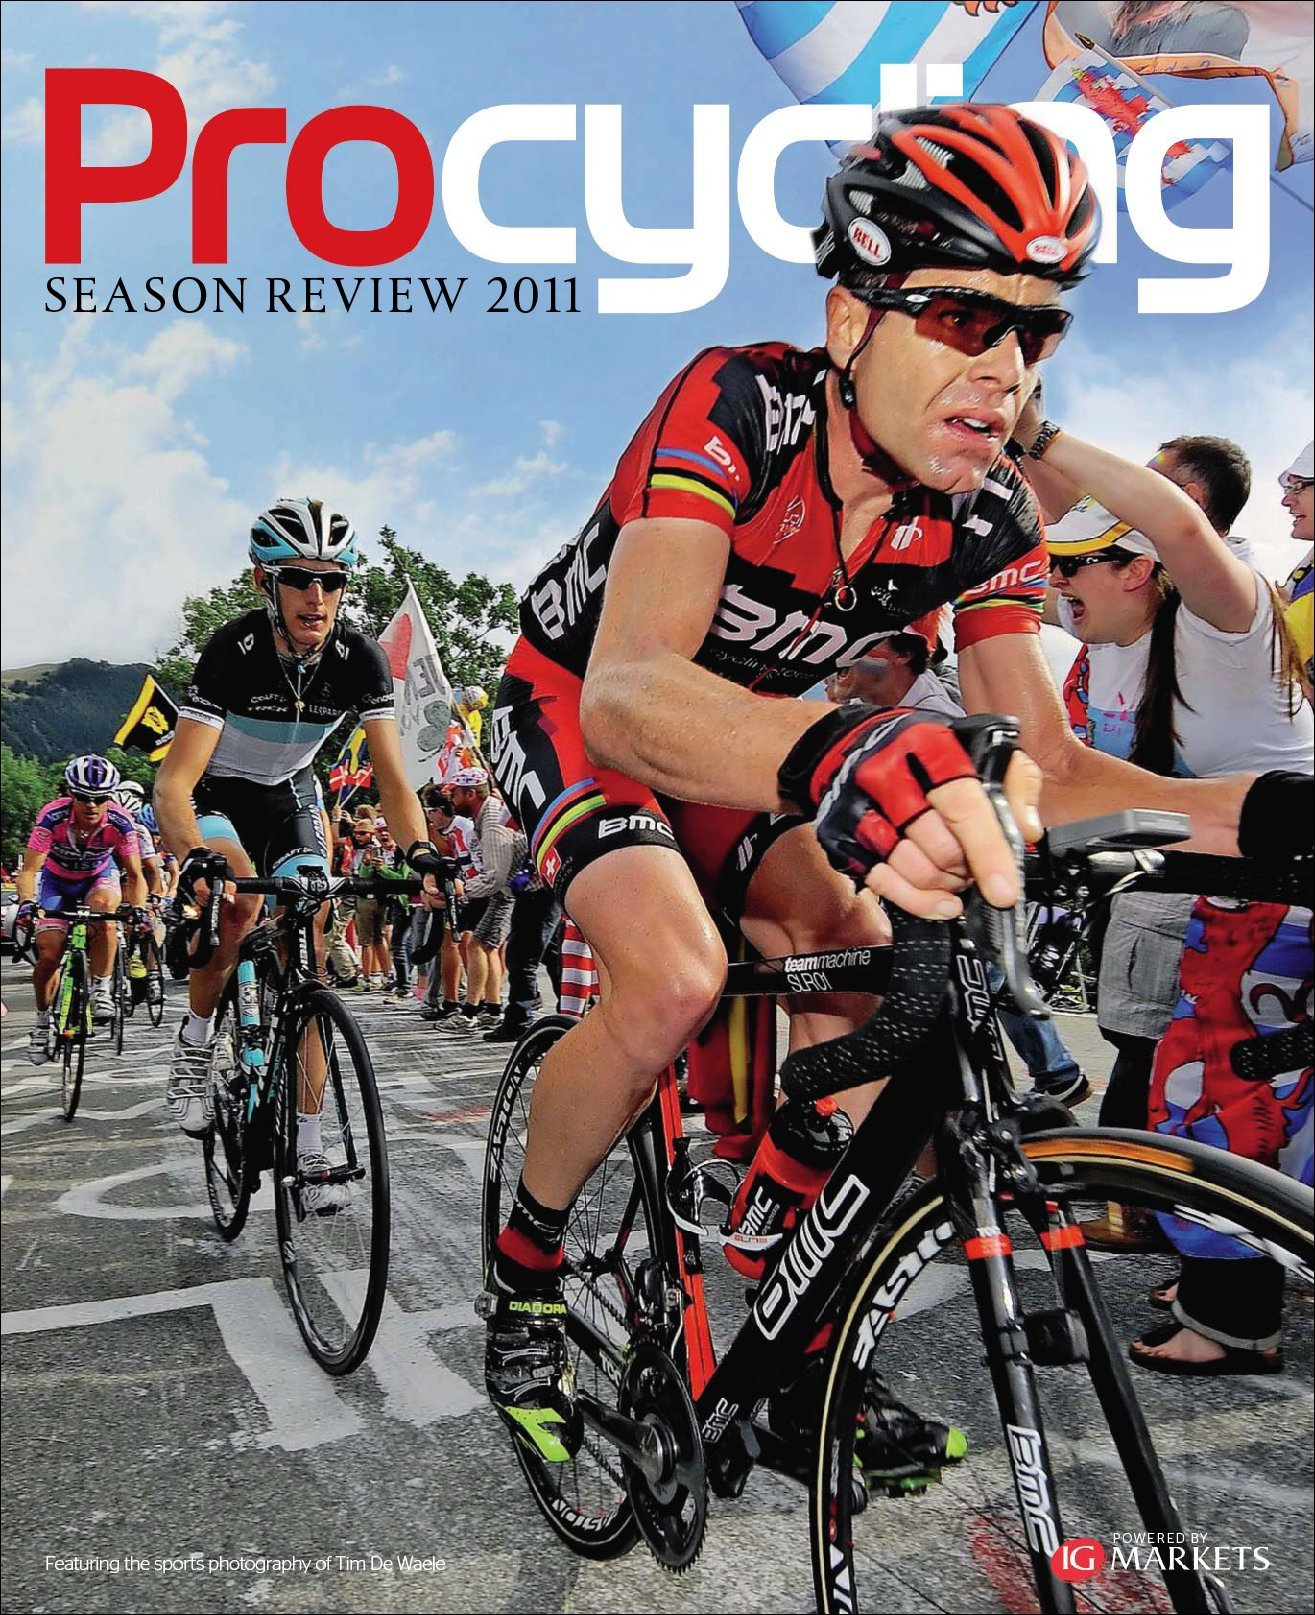 Procycling Season Review 2011 Digital